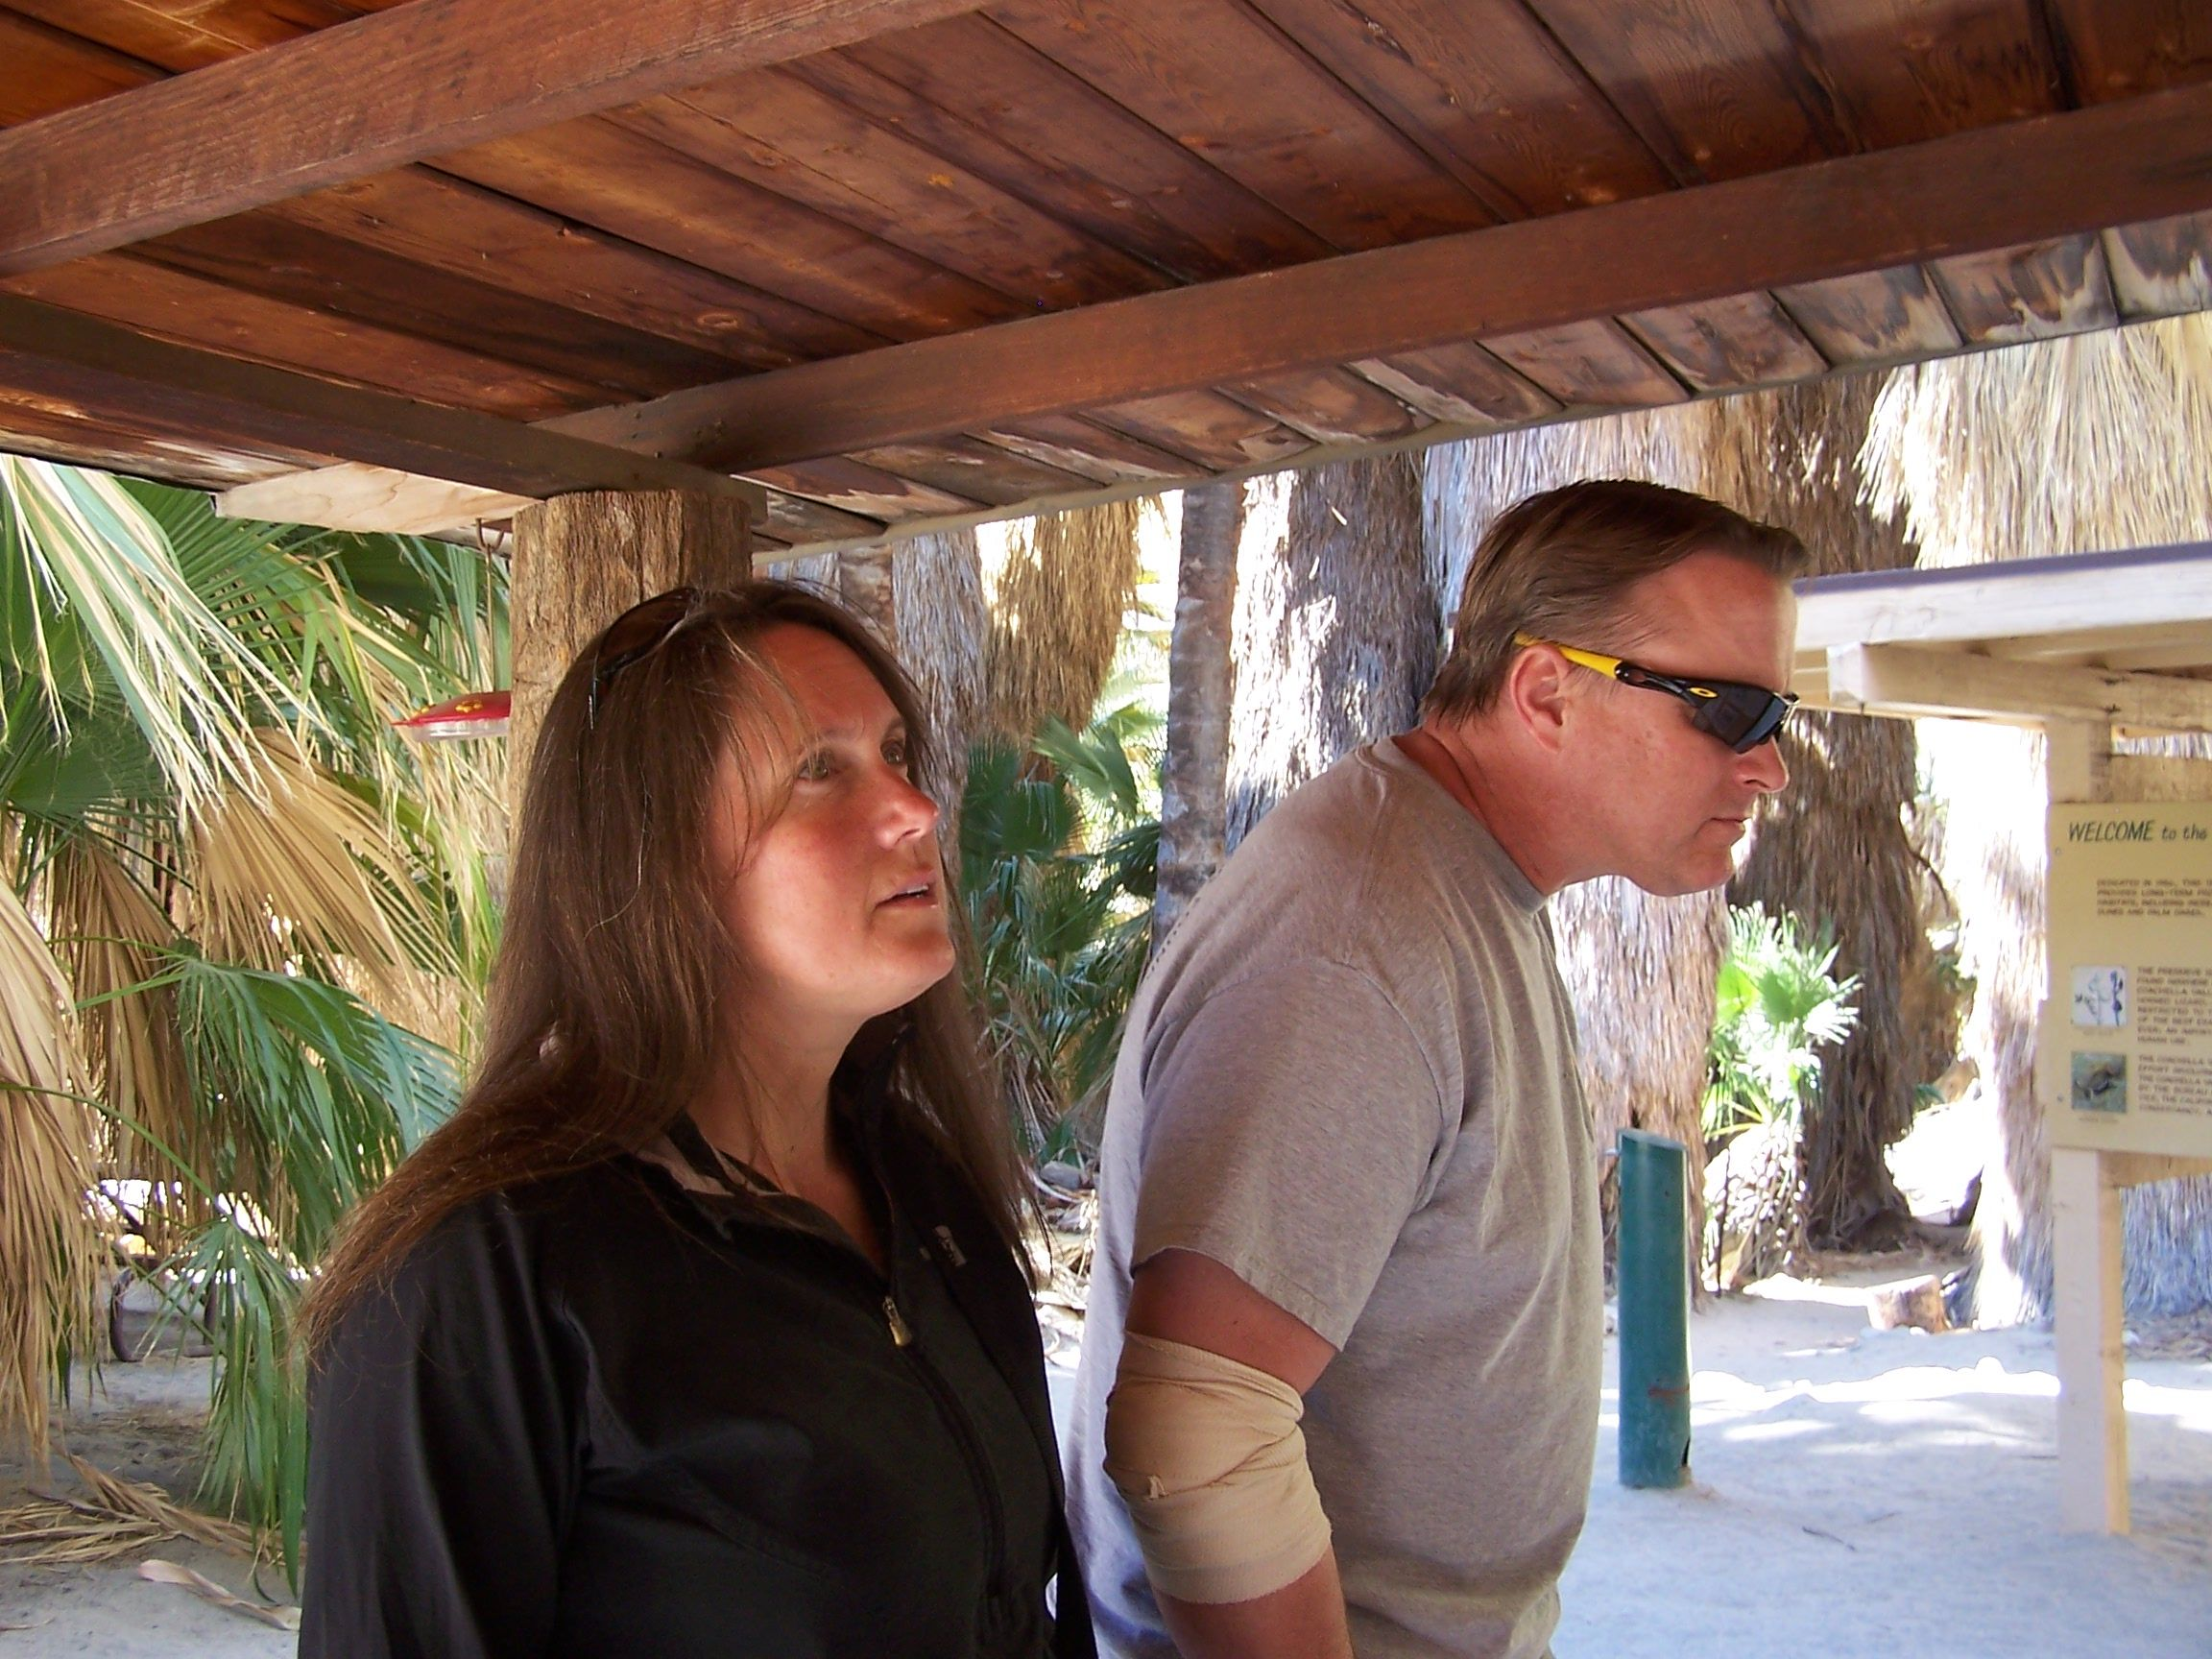 Our Daughter Shani and Son In Law Jason taken at the Palm Oasis in Thousand Palms.  It was great fun having them come for a visit.